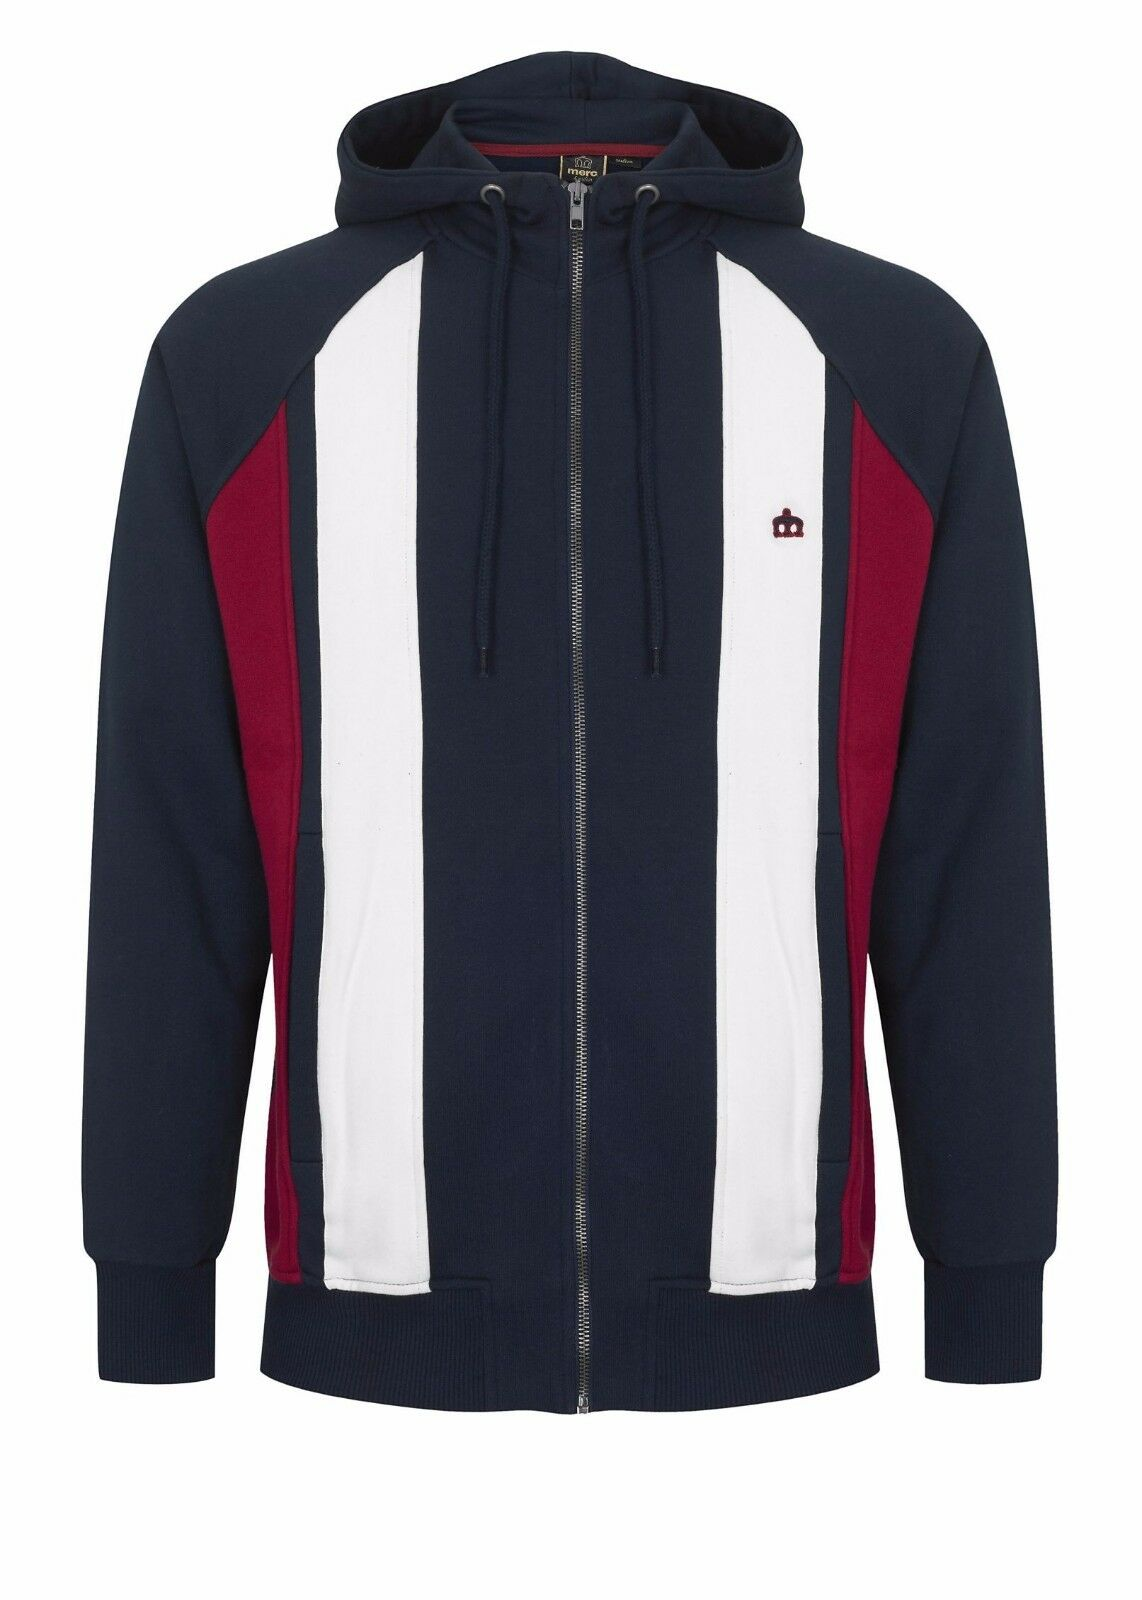 Herren Merc London Zip Up Panel Stripe Hooded Sweatshirt Top Hainton - Navy Blau